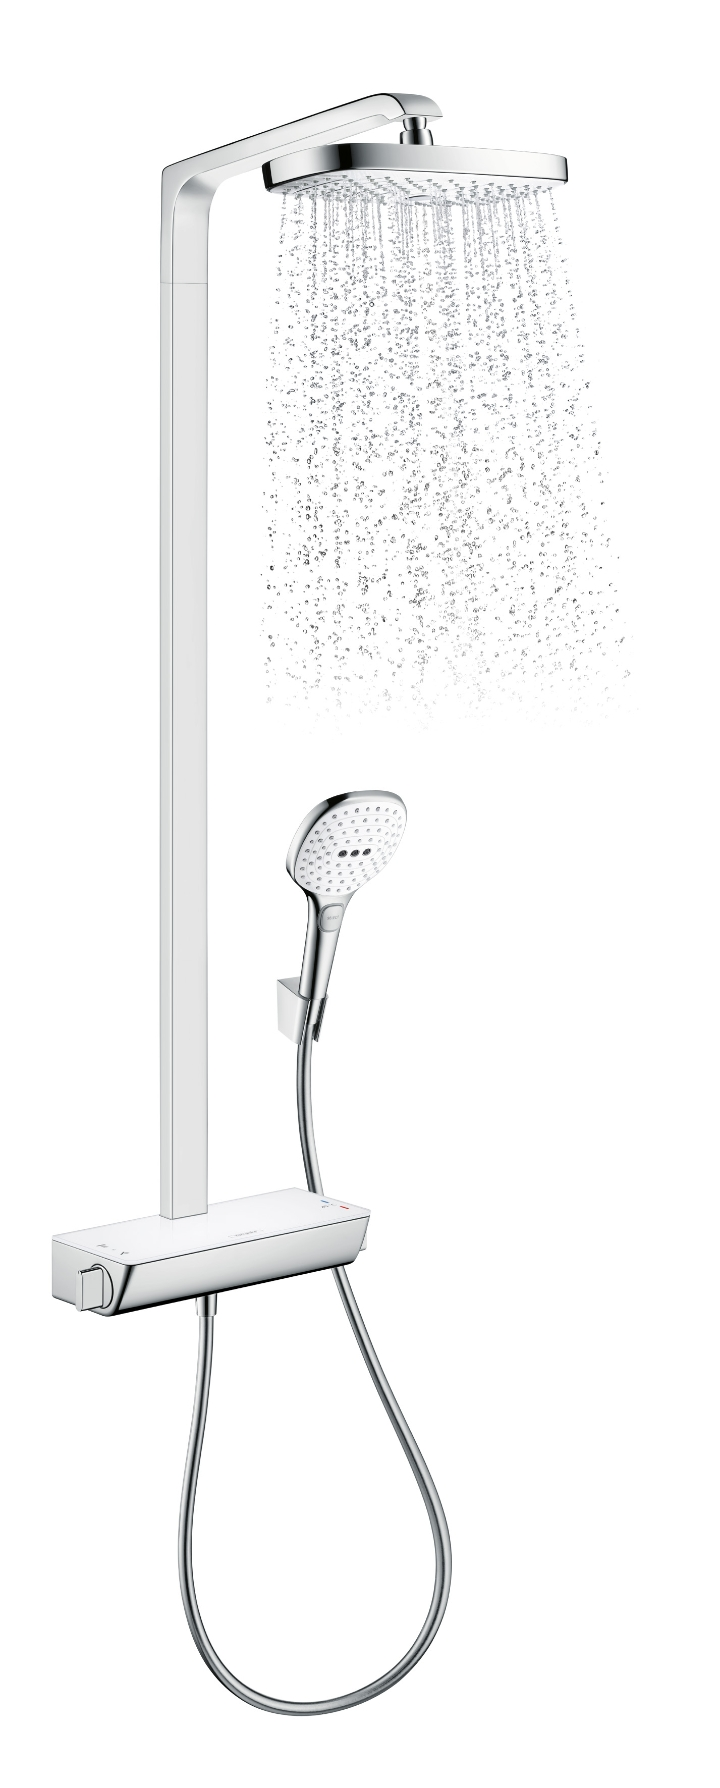 HansgroheRaindanceSelect E 300 Showerpipe finitura bianco cromo